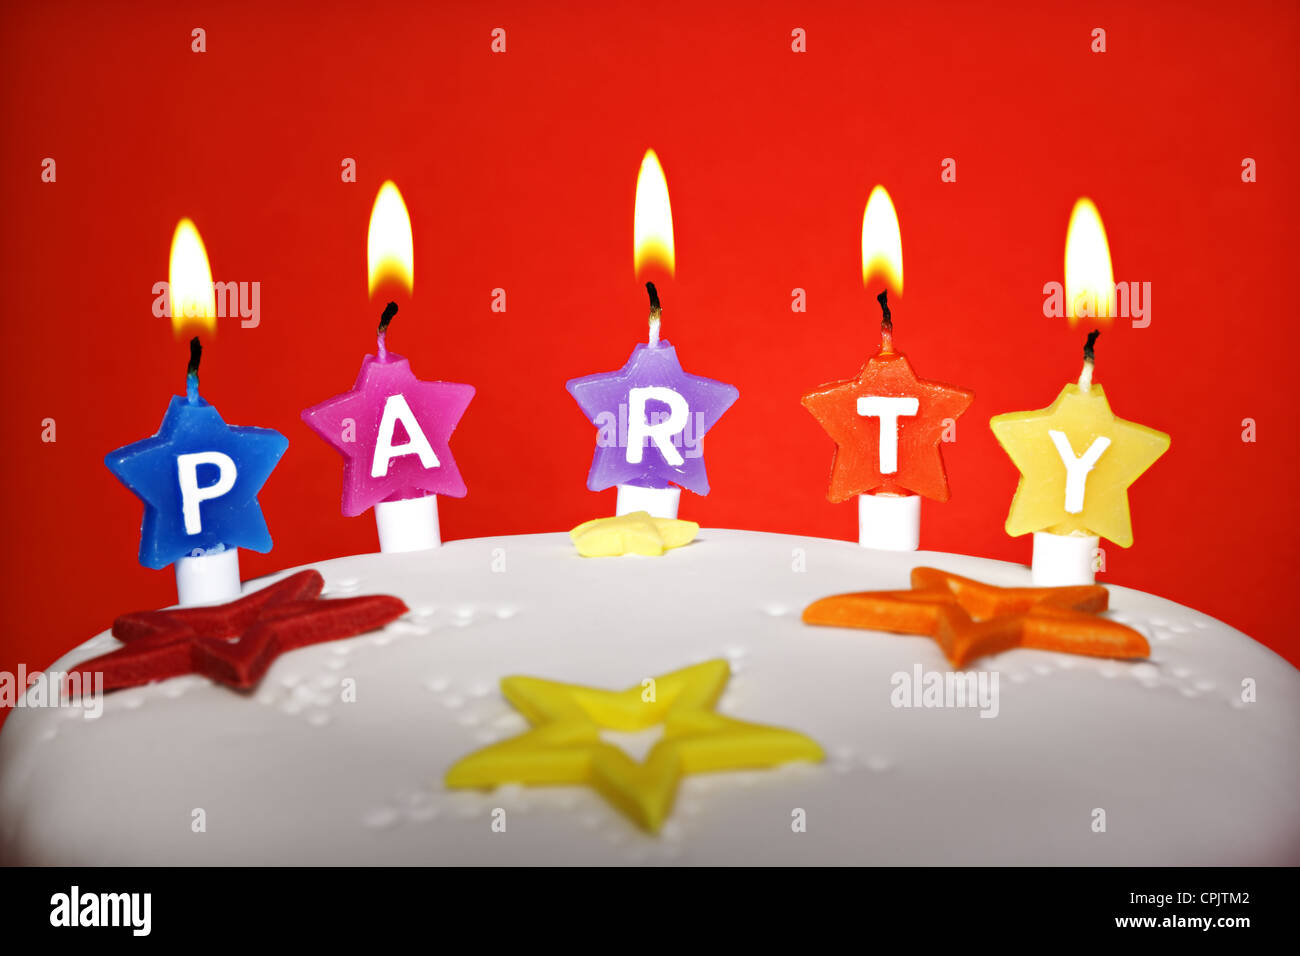 Birthday party cake - Stock Image